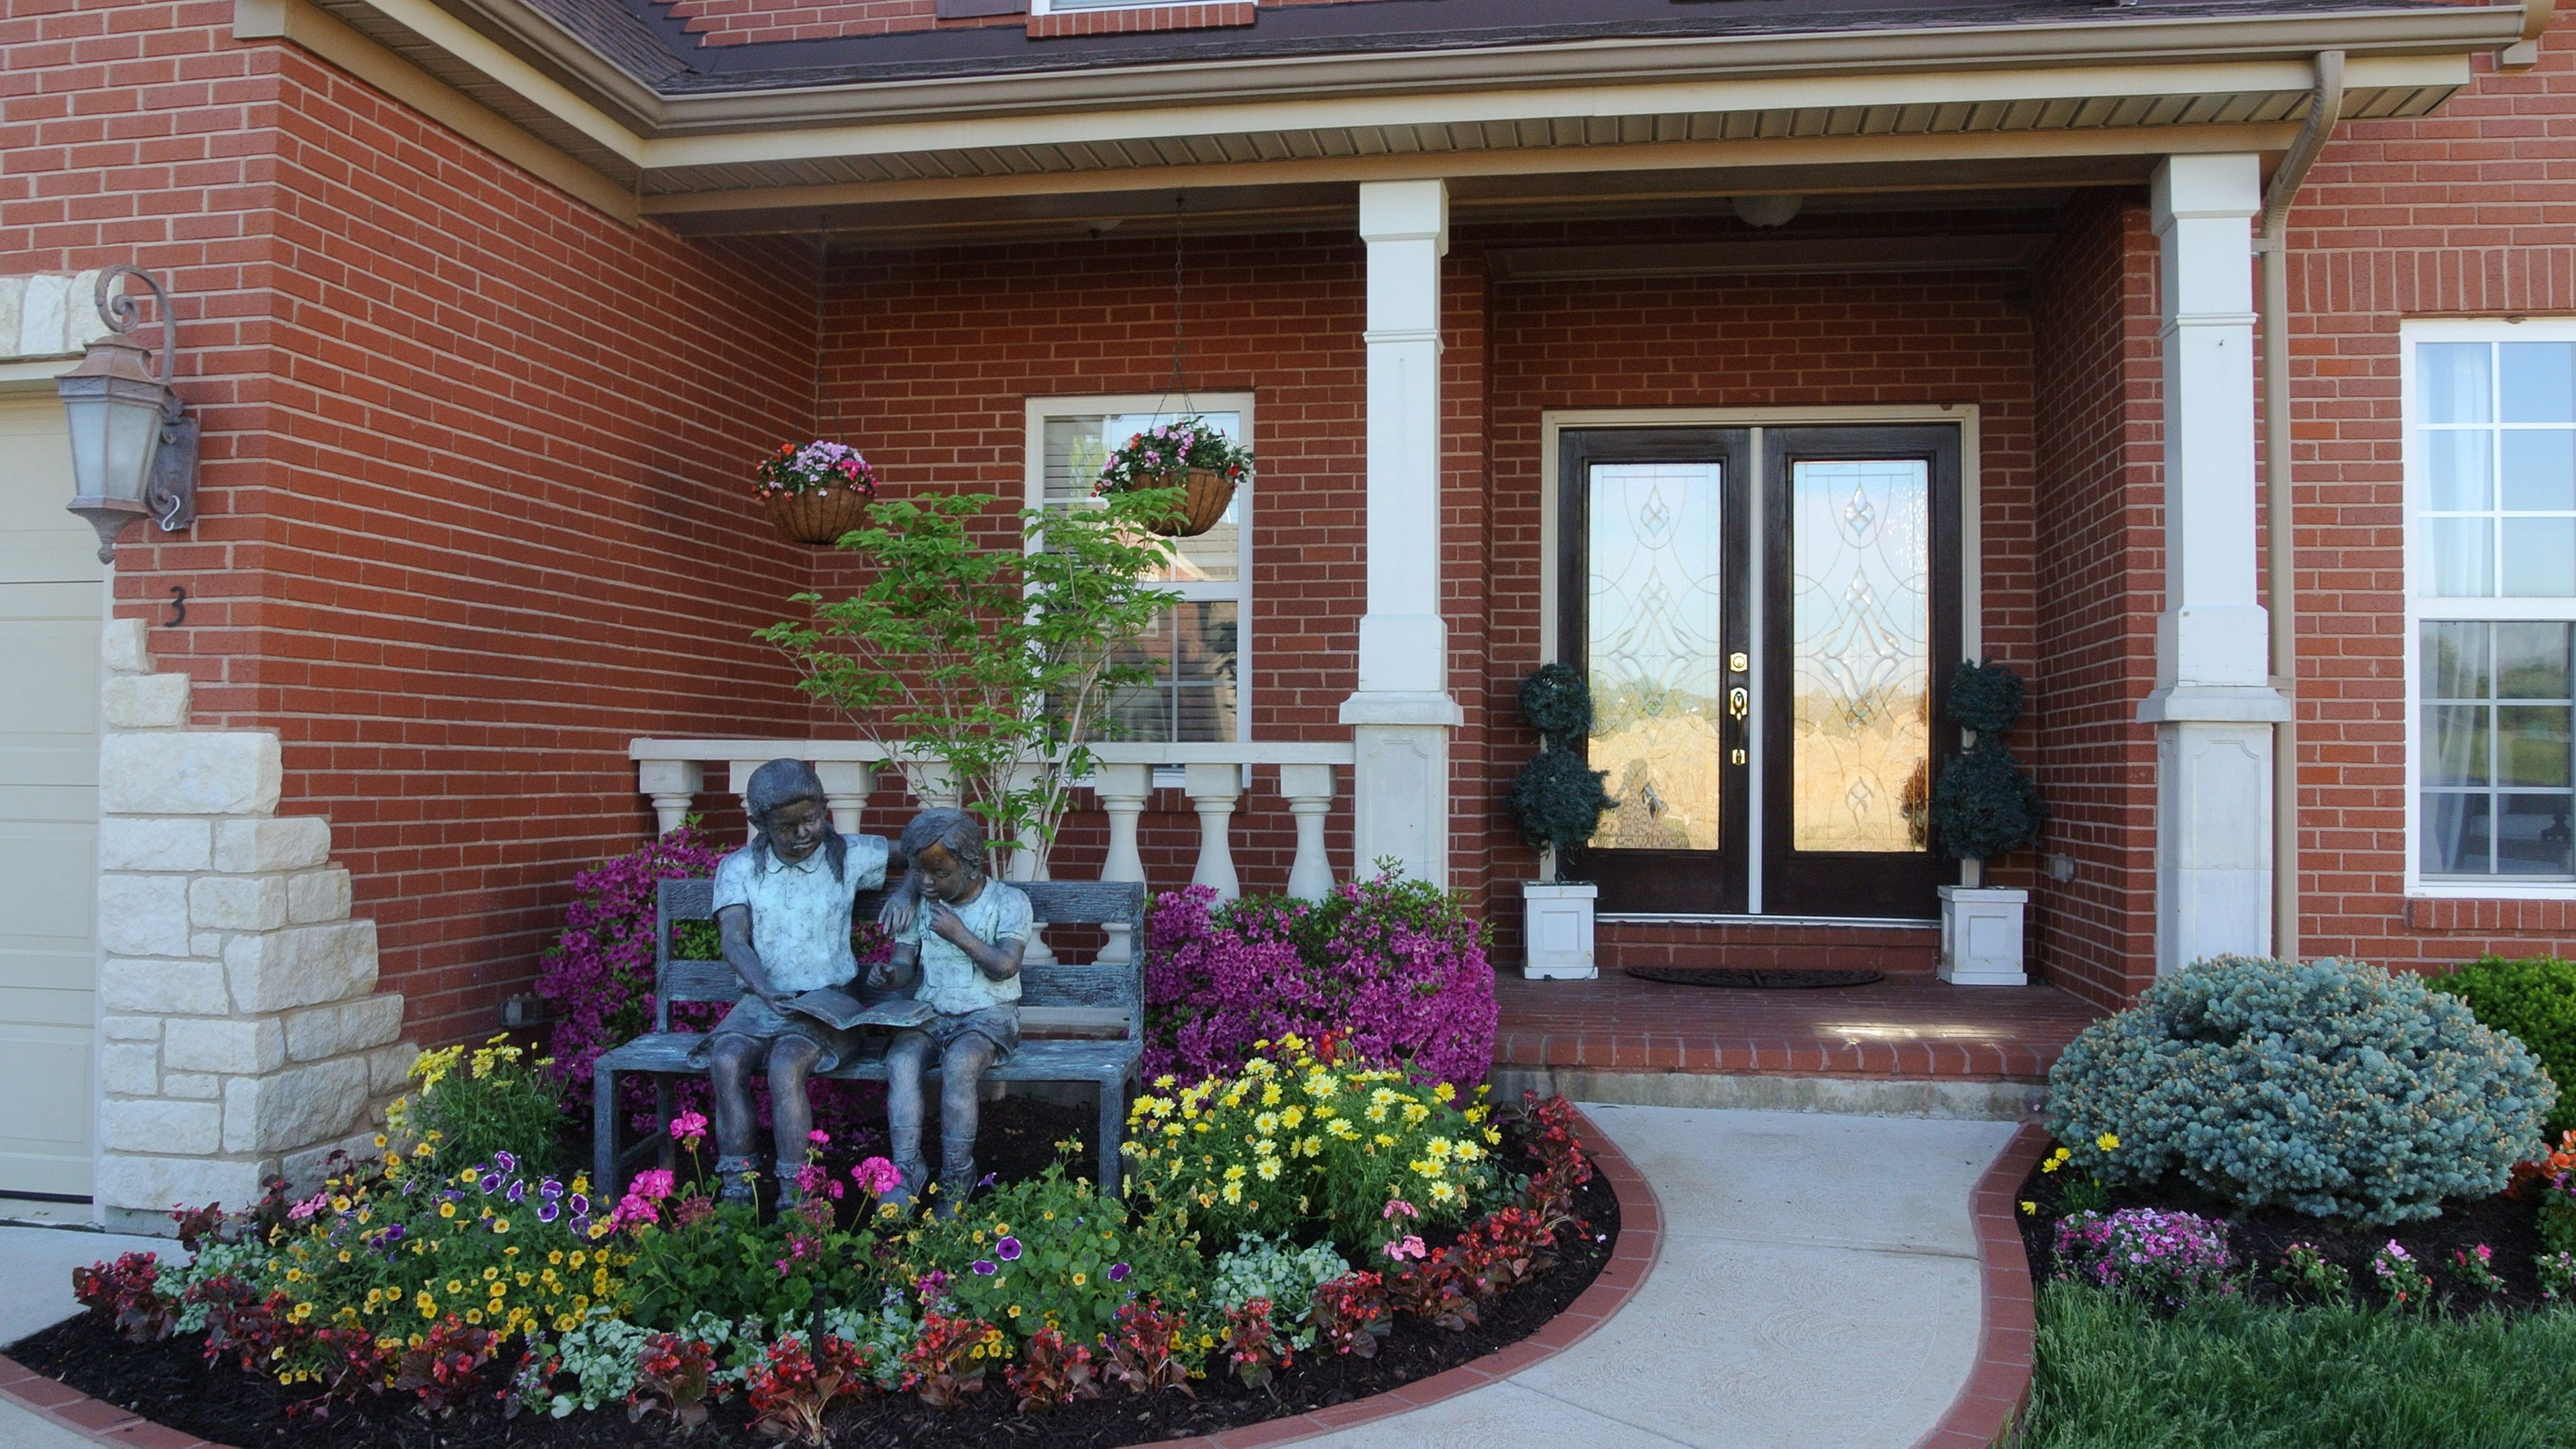 Best 25 Easy Flower Bed Ideas To Make Front Yard More Beautiful Freshouz Com Front Yard Landscaping Small Front Yard Landscaping Front Yard Garden